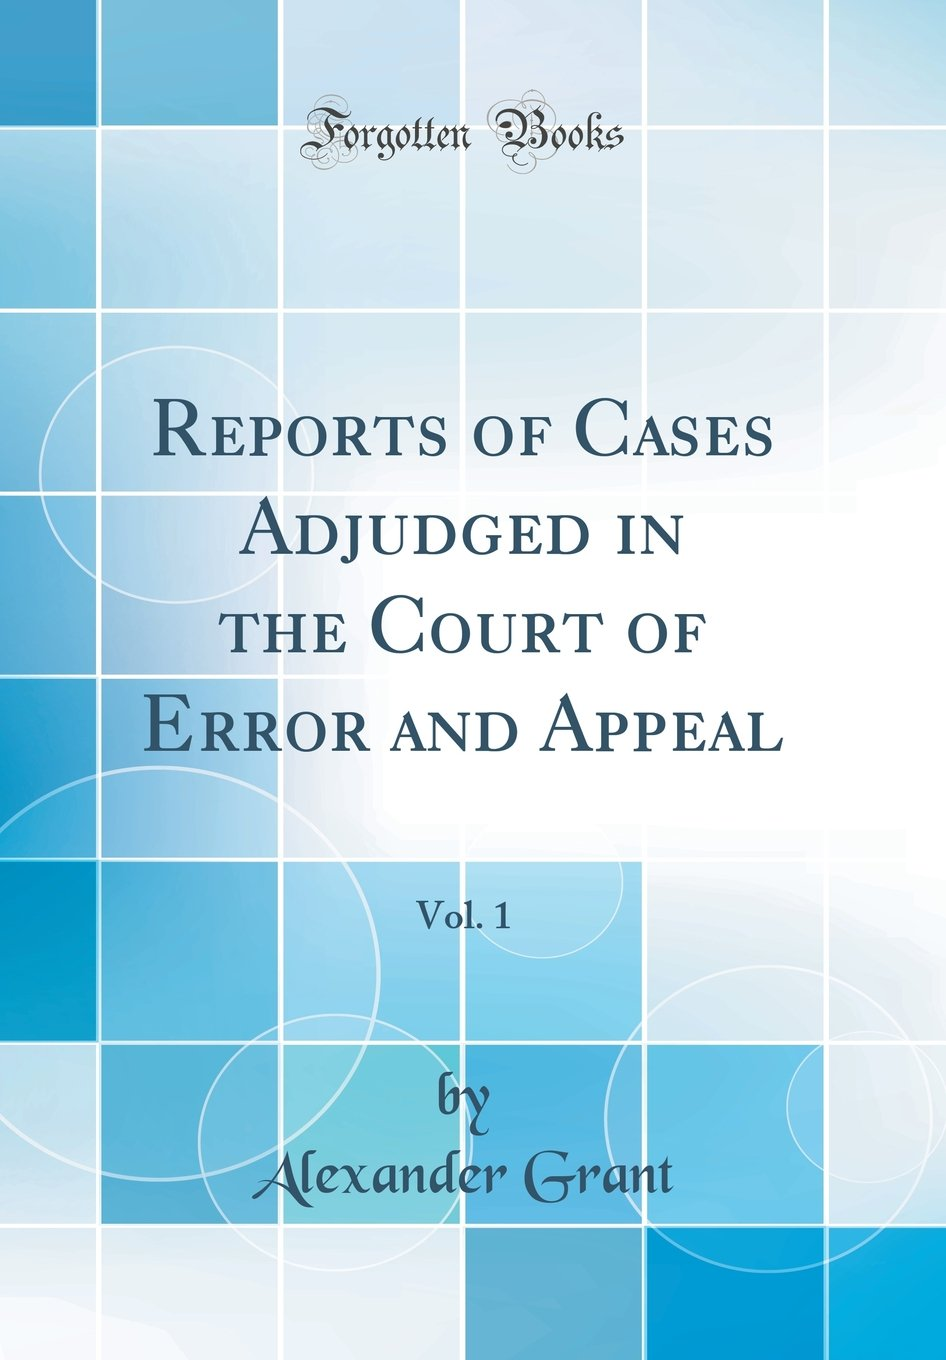 Read Online Reports of Cases Adjudged in the Court of Error and Appeal, Vol. 1 (Classic Reprint) PDF